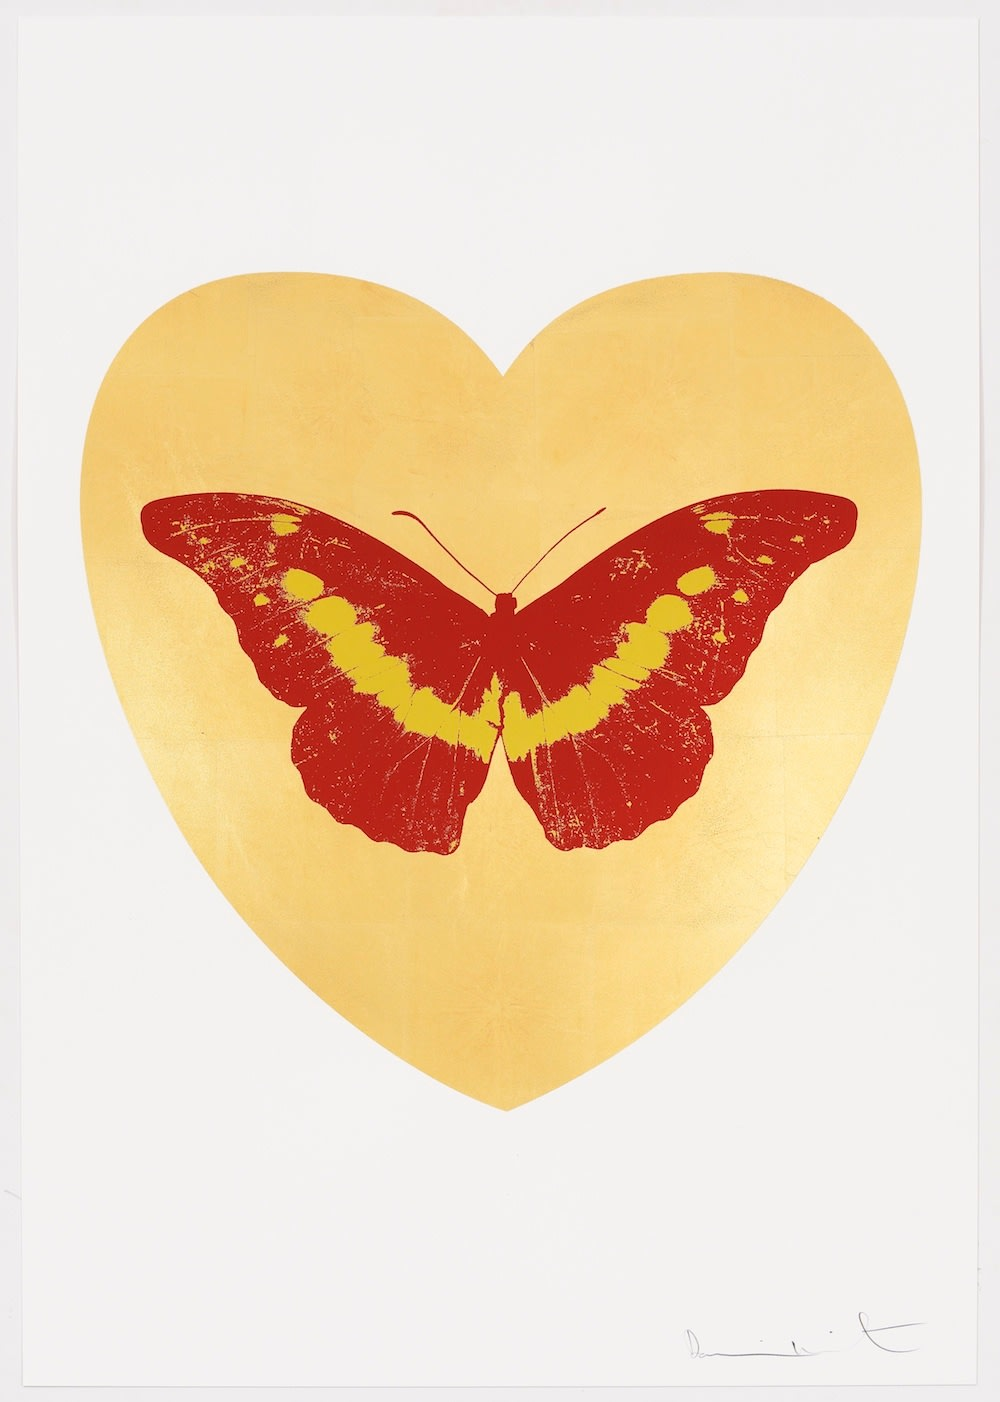 Damien Hirst I Love You - gold leaf, poppy red, oriental gold, 2015 Gold leaf and 2 colour foil block on Somerset Satin 410gsm. OC10327 100 x 70 cm. Edition of 14 Signed and numbered